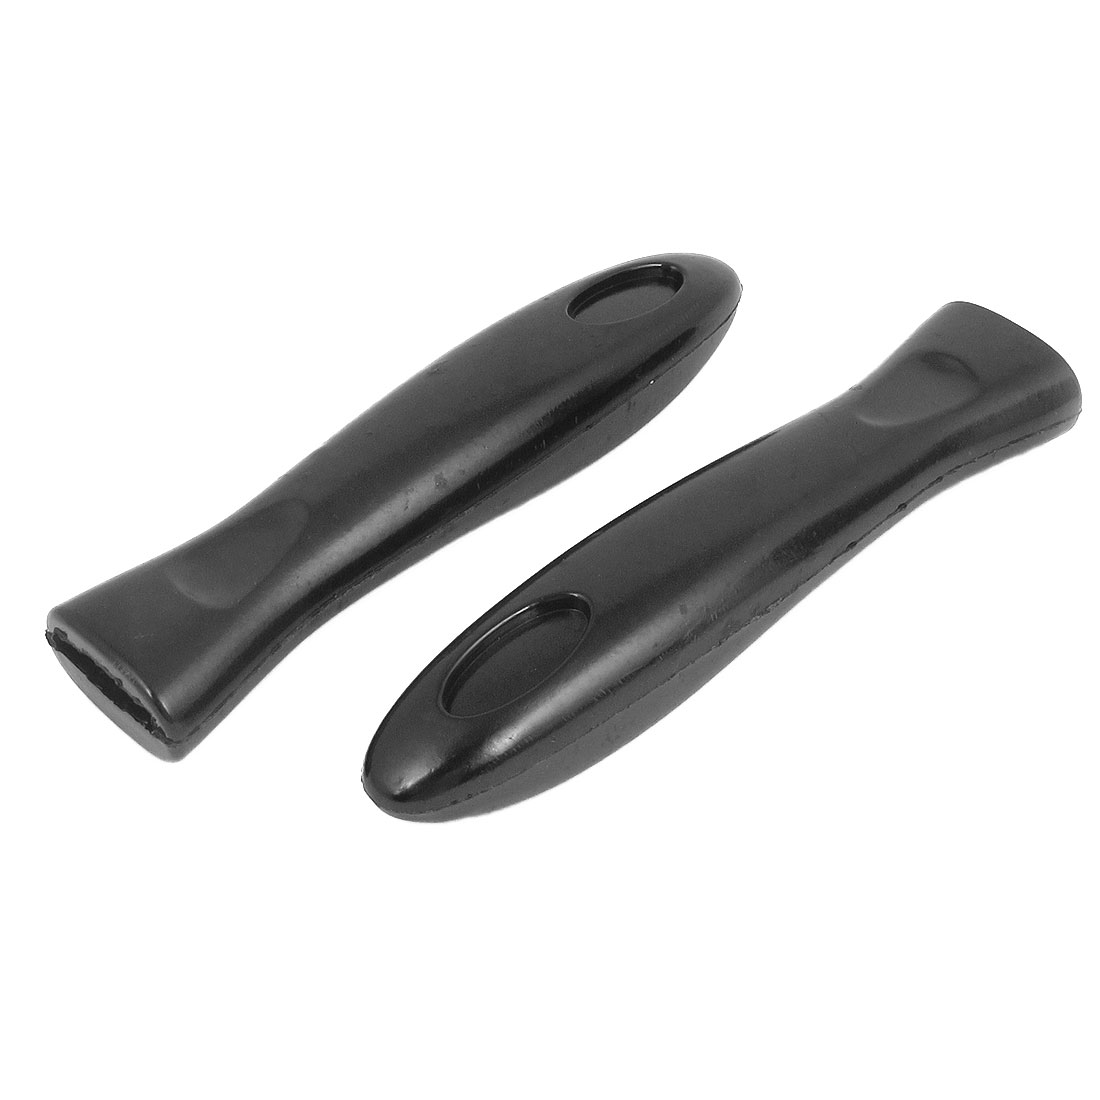 2pcs 16cm Long Black Plastic Fry Pan Pot Holder Handle Grip Handgrip Cooking Tool